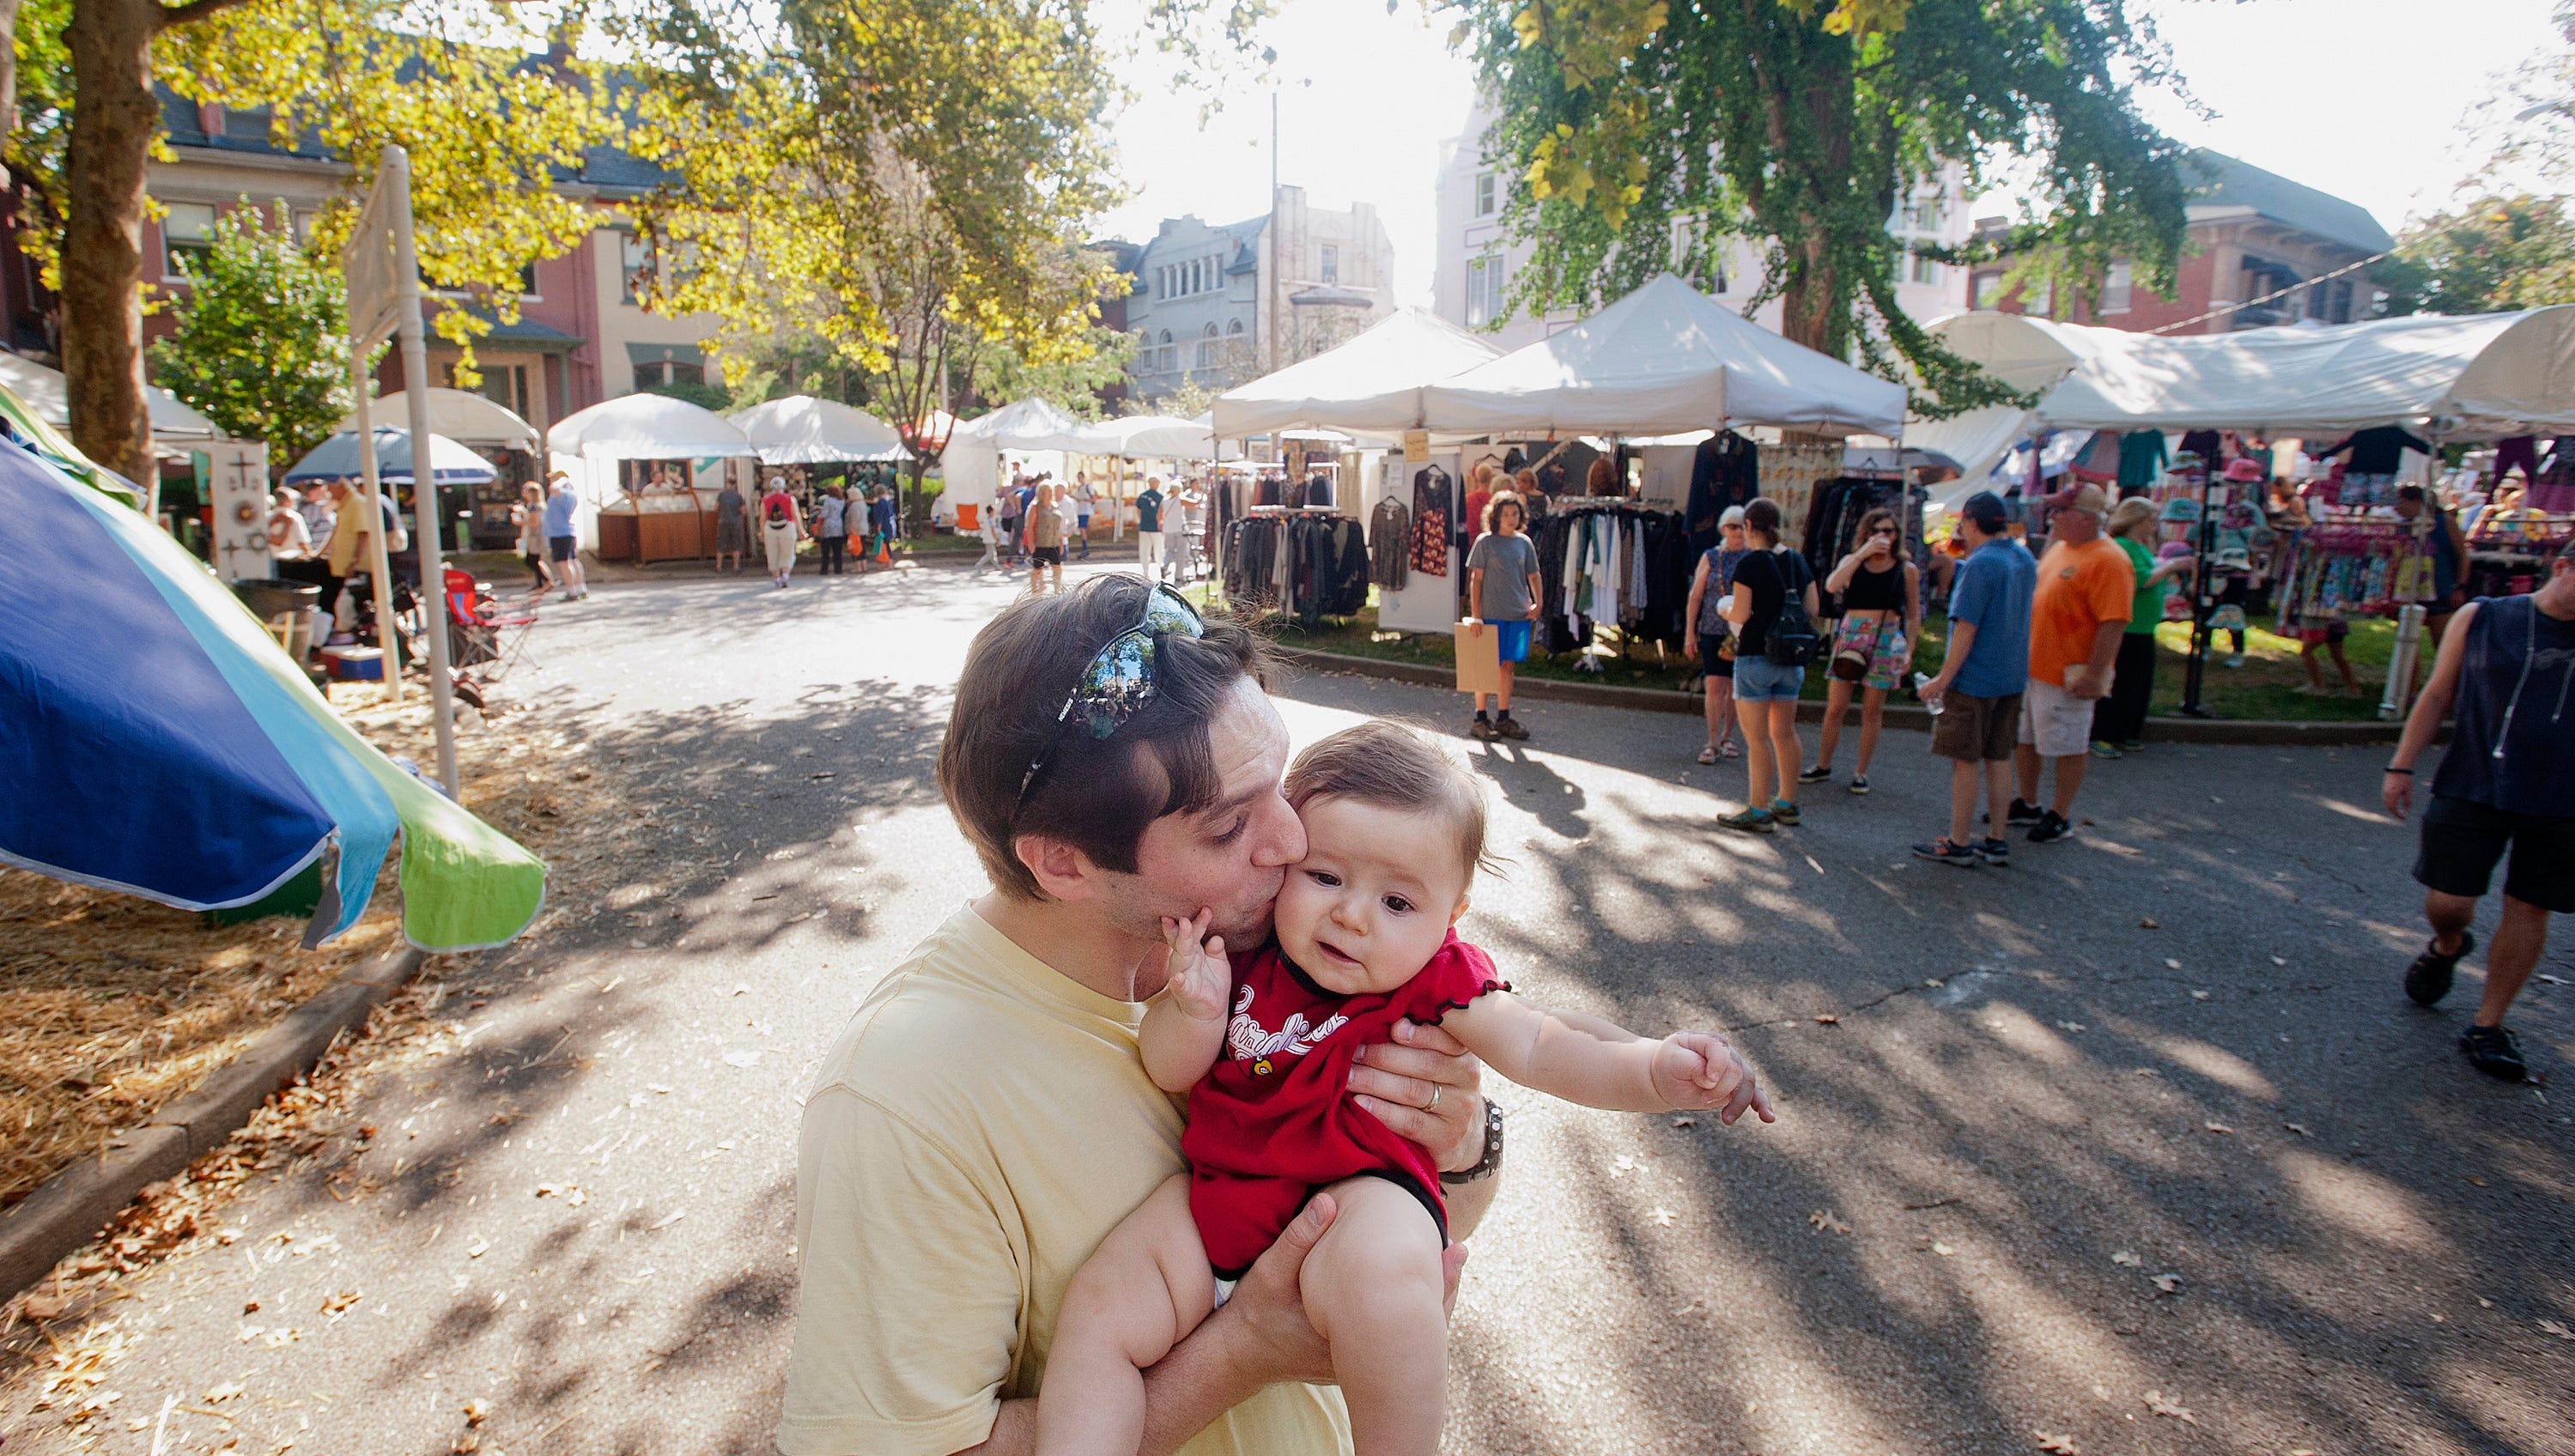 Michael Fazio gives his 6-month-old daughter Isabel a kiss at the St. James Art Fair. The two were taking in the collections of artists' works there. October 06, 2018